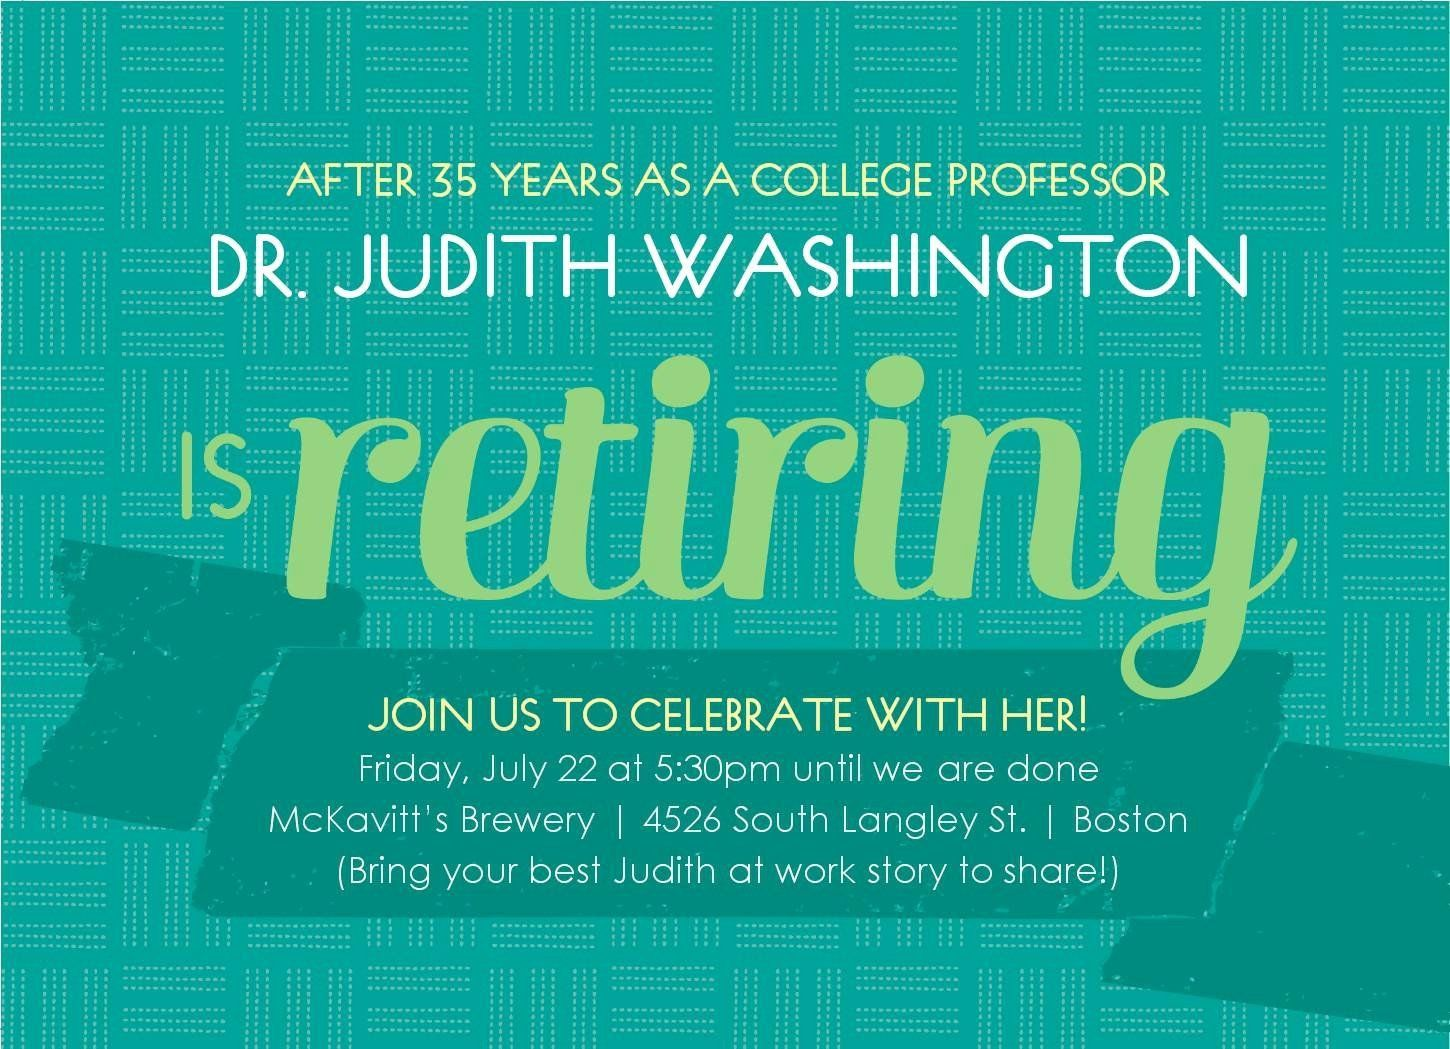 002 Stunning Retirement Farewell Party Invitation Template Free Highest Clarity Full